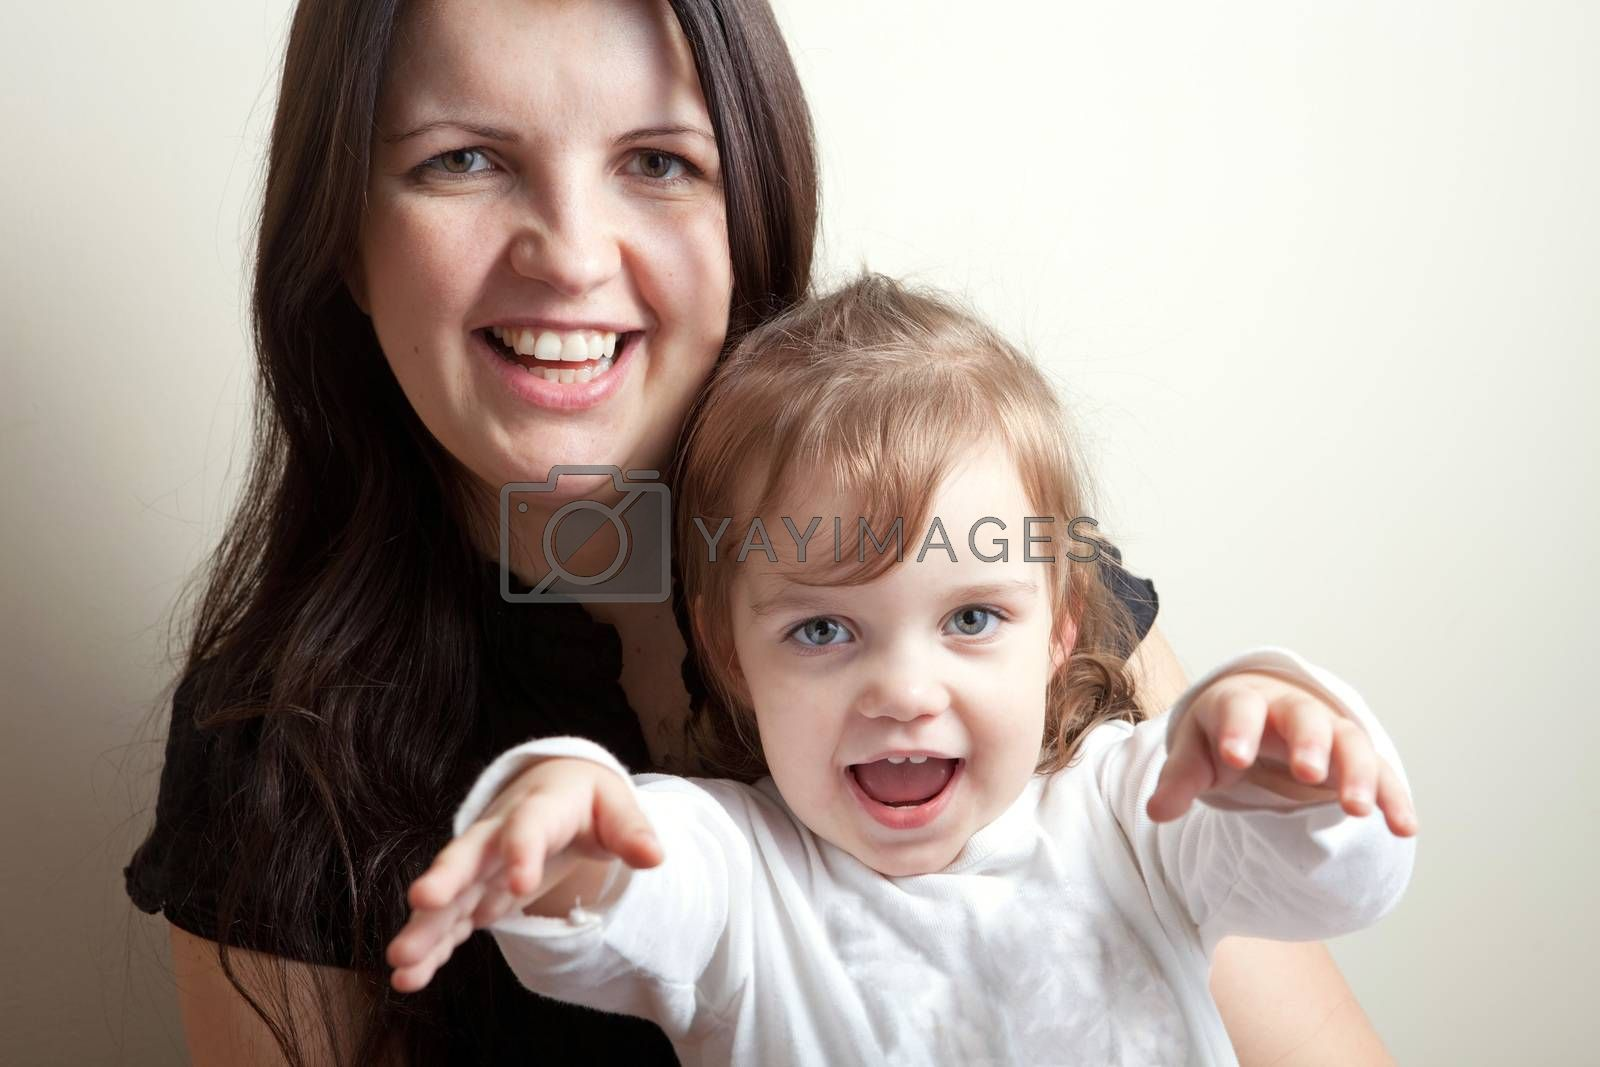 Toddler age girl sitting with her smiling mother.